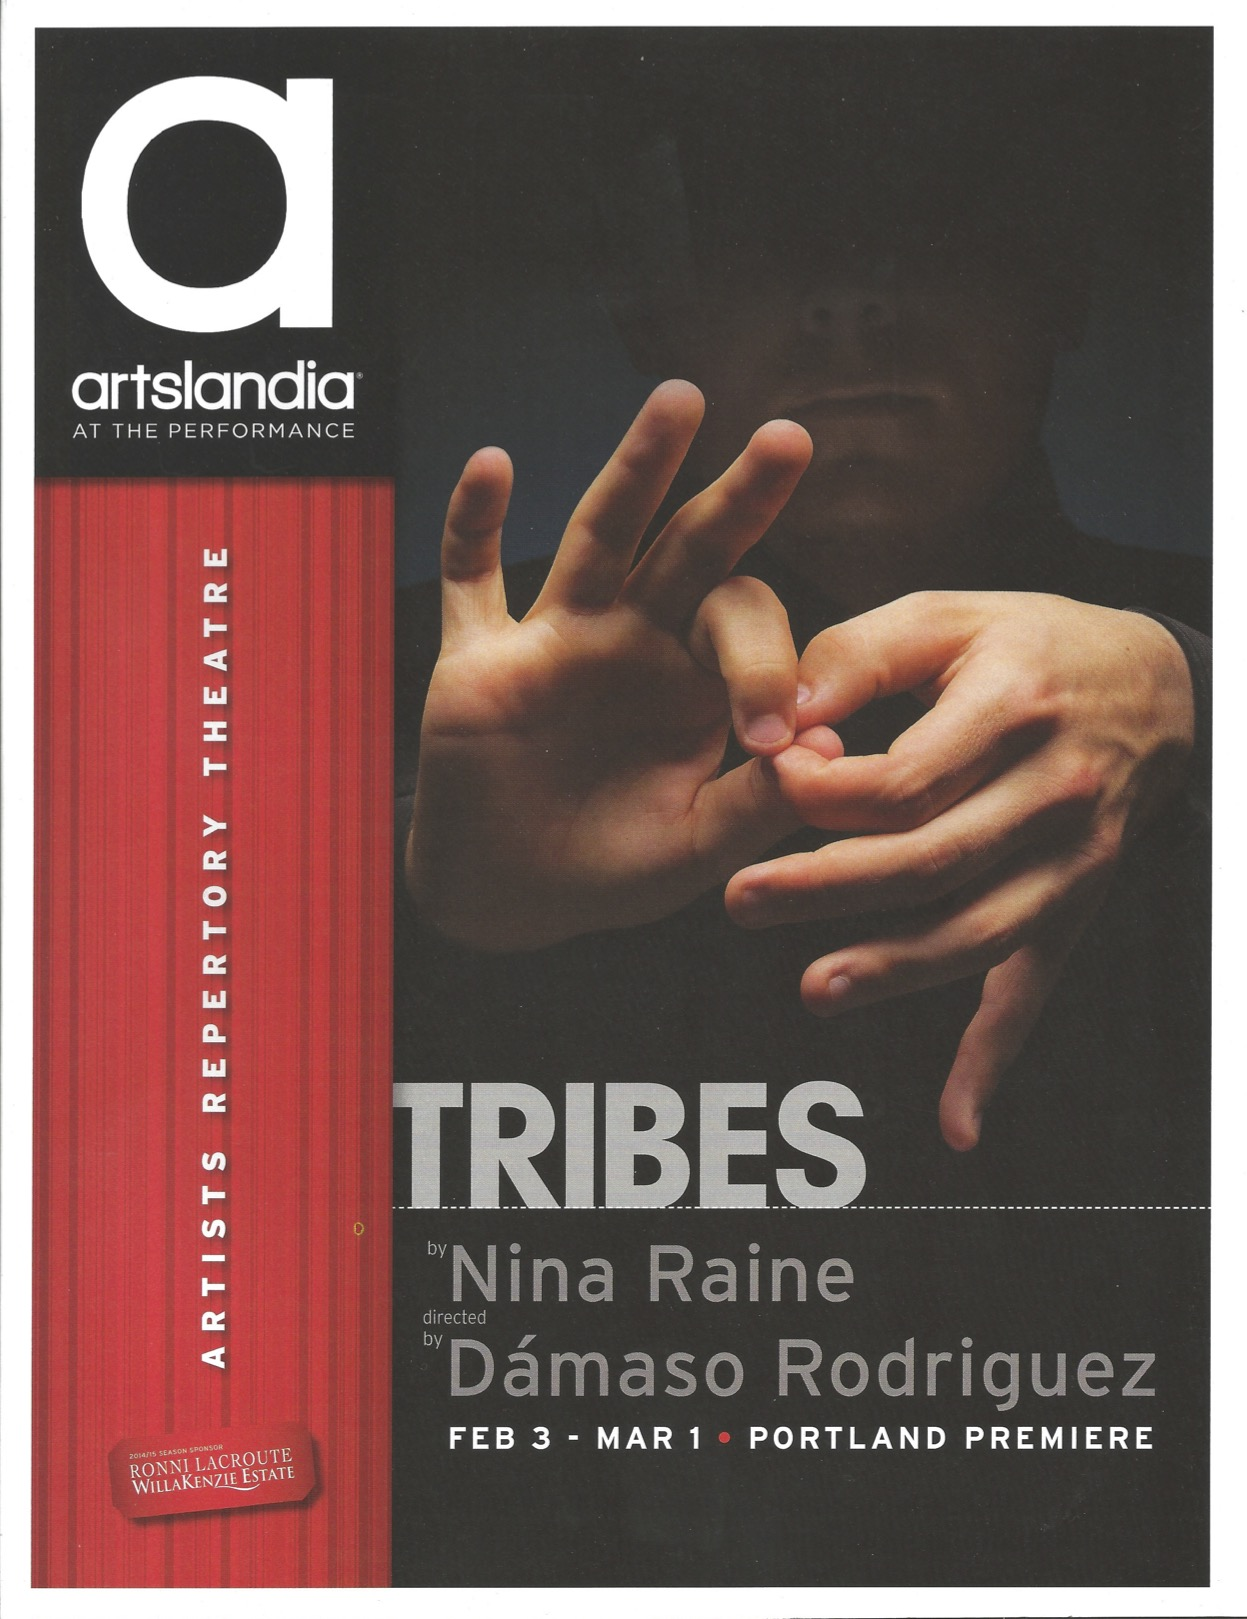 01 Tribes Graphic v11.jpg